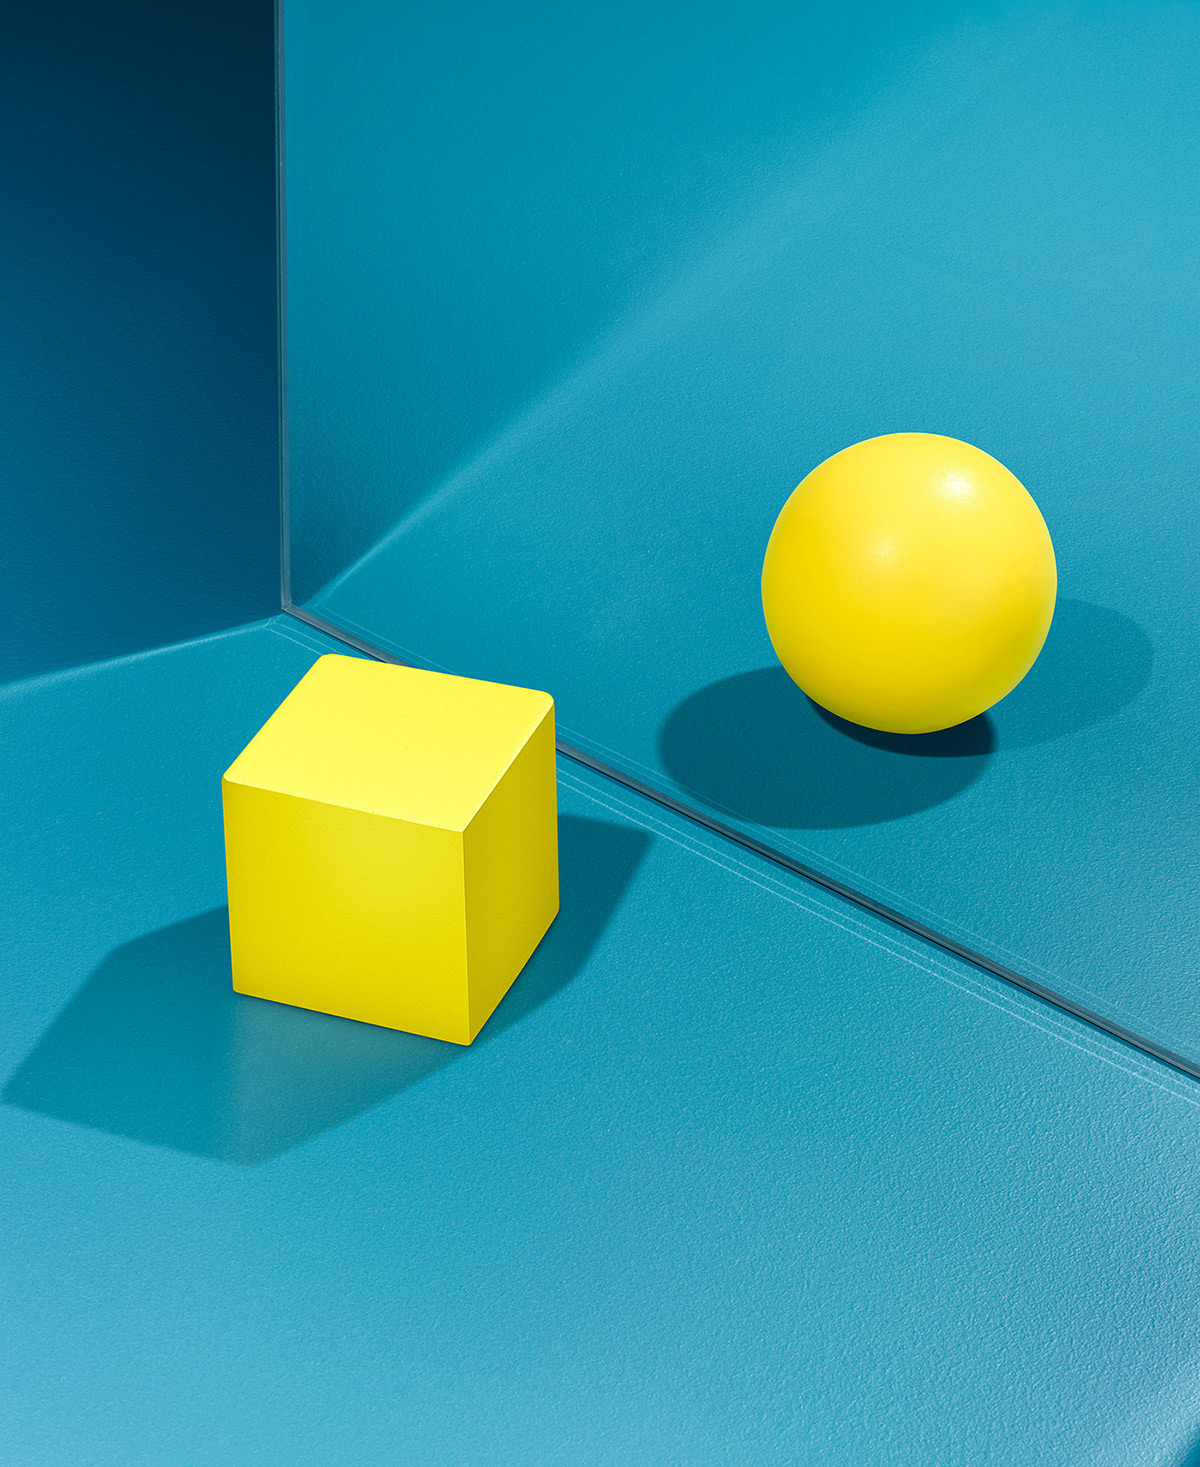 https://tickertapecdn.tdameritrade.com/assets/images/pages/md/Cube in mirror is a sphere